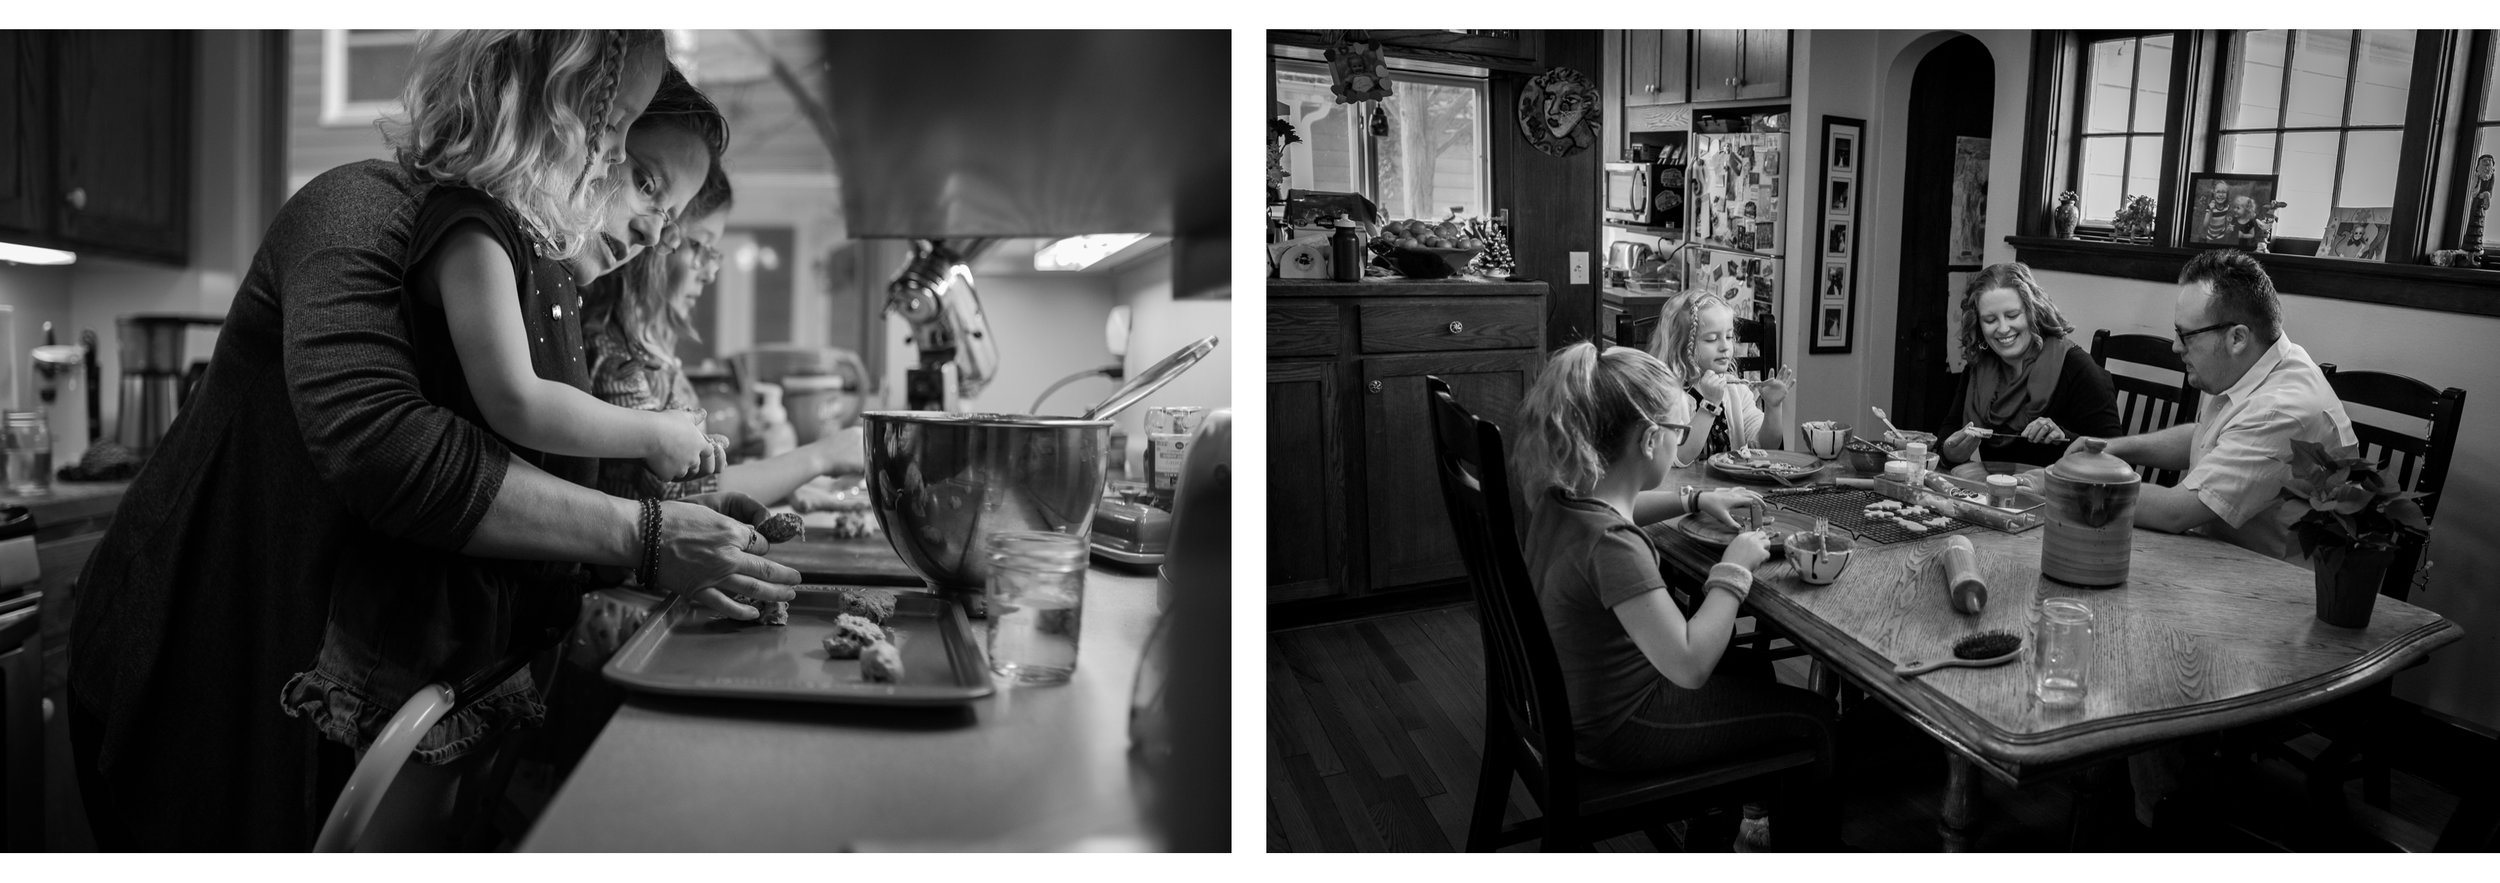 The Waggles made cookies back in 2016 (left) and again in 2018 (right). This last time it was fun to see Mom sit down and engage in conversation. The girls are so much more independent now.